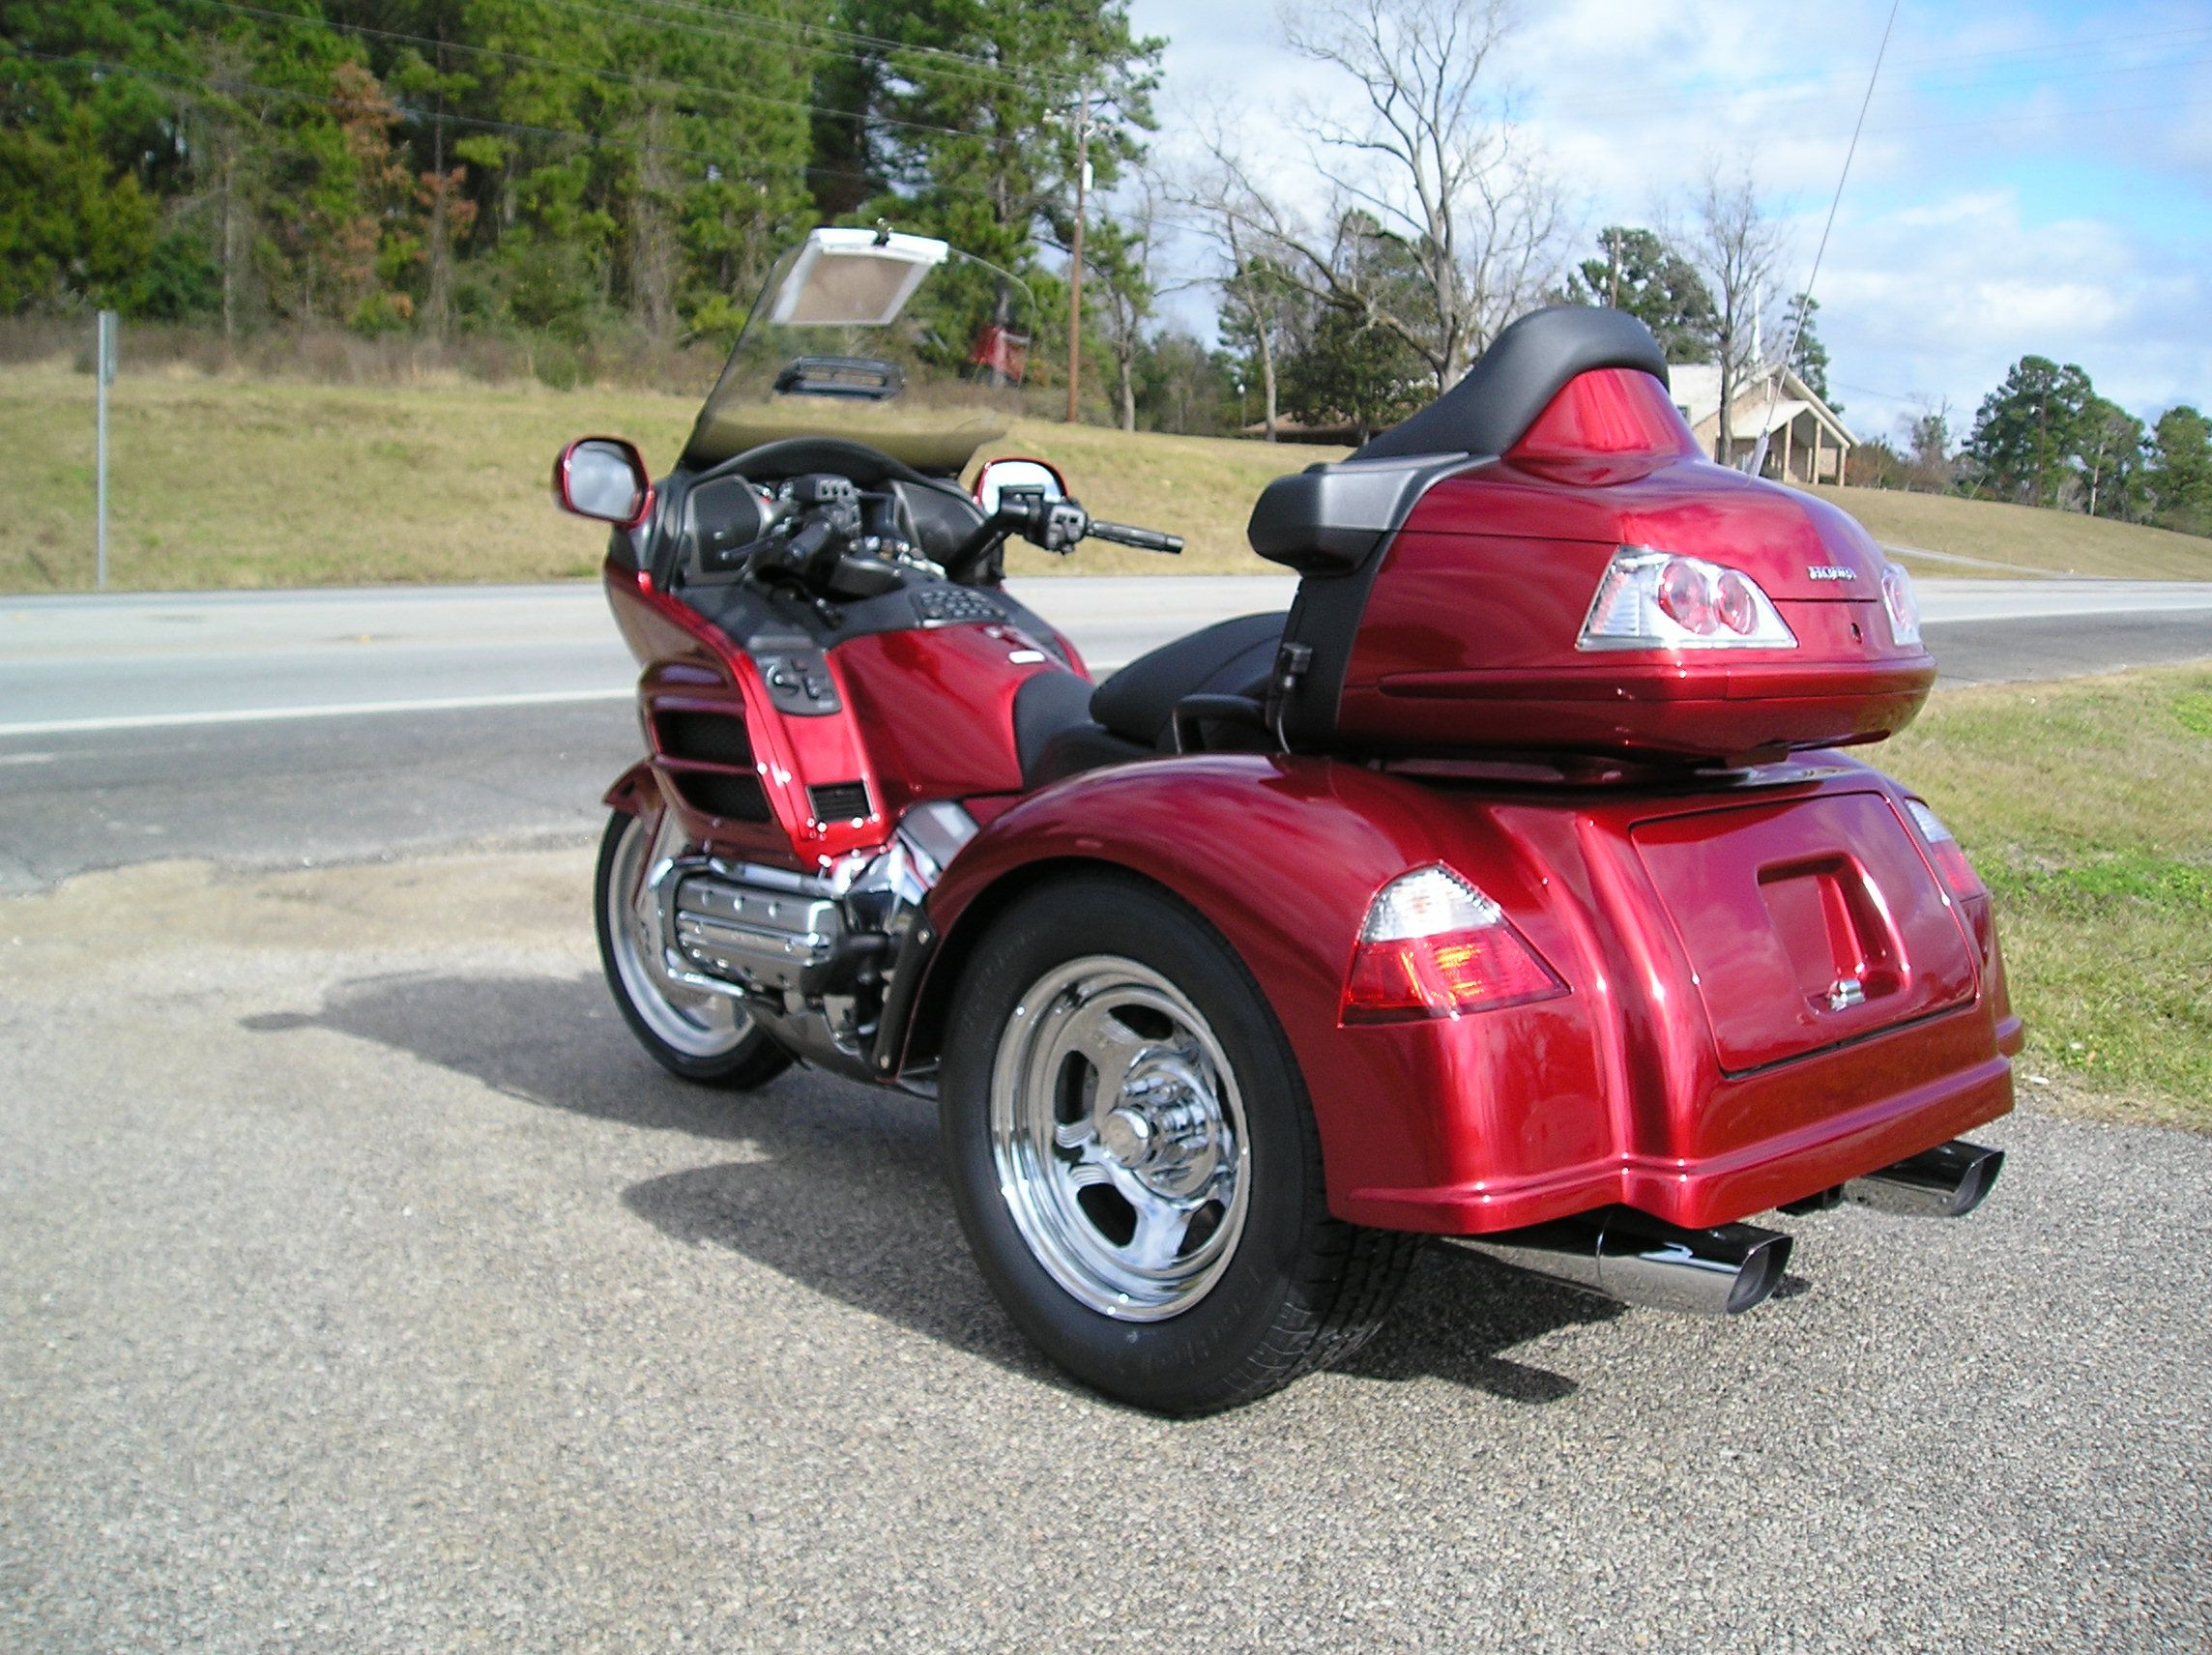 trike youtube goldwing for used watch motorcycle honda sale